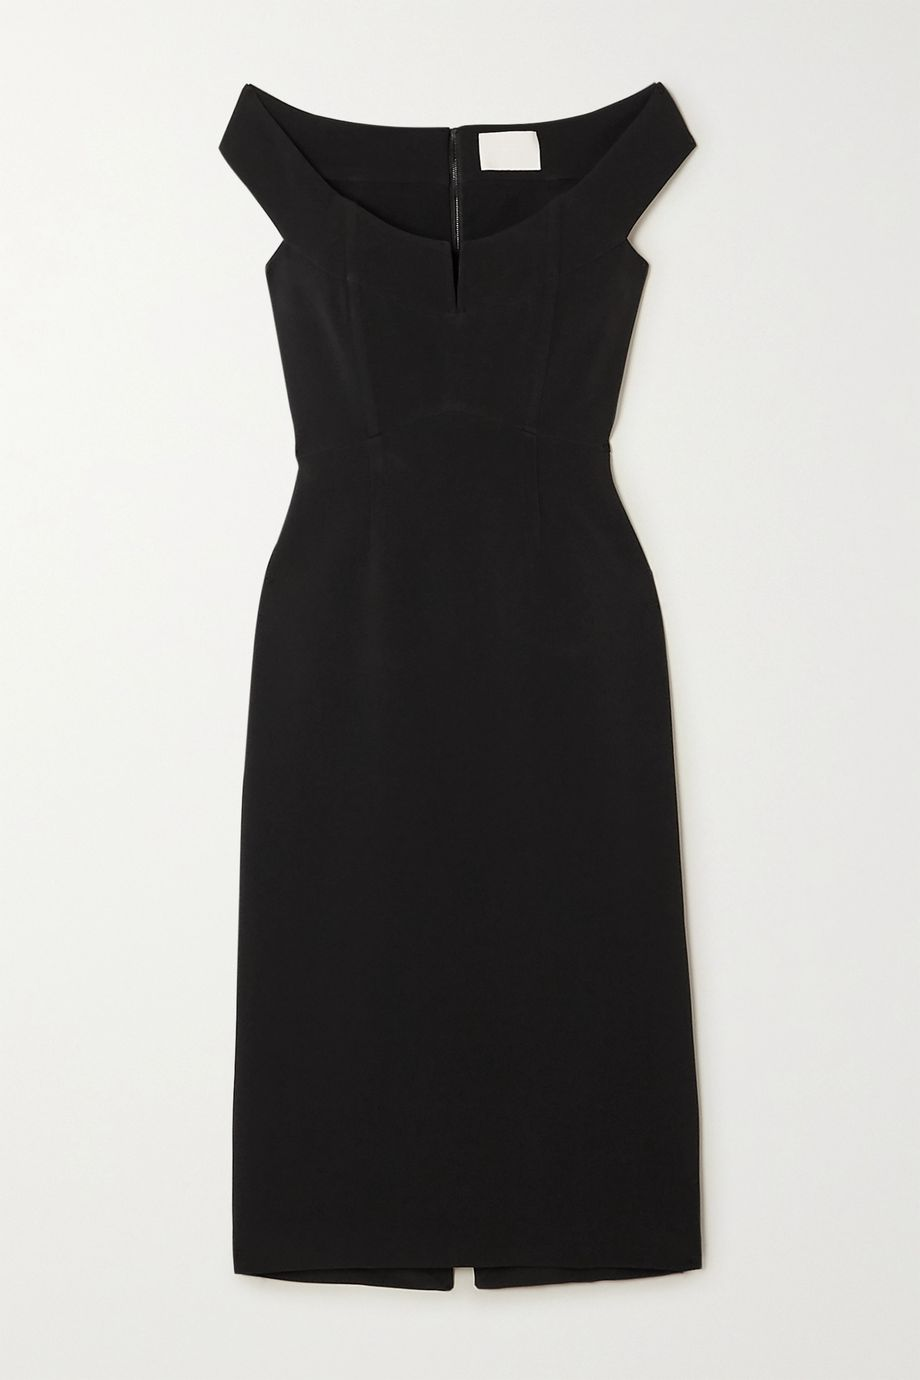 Dion Lee Off-the-shoulder stretch-cady bustier dress